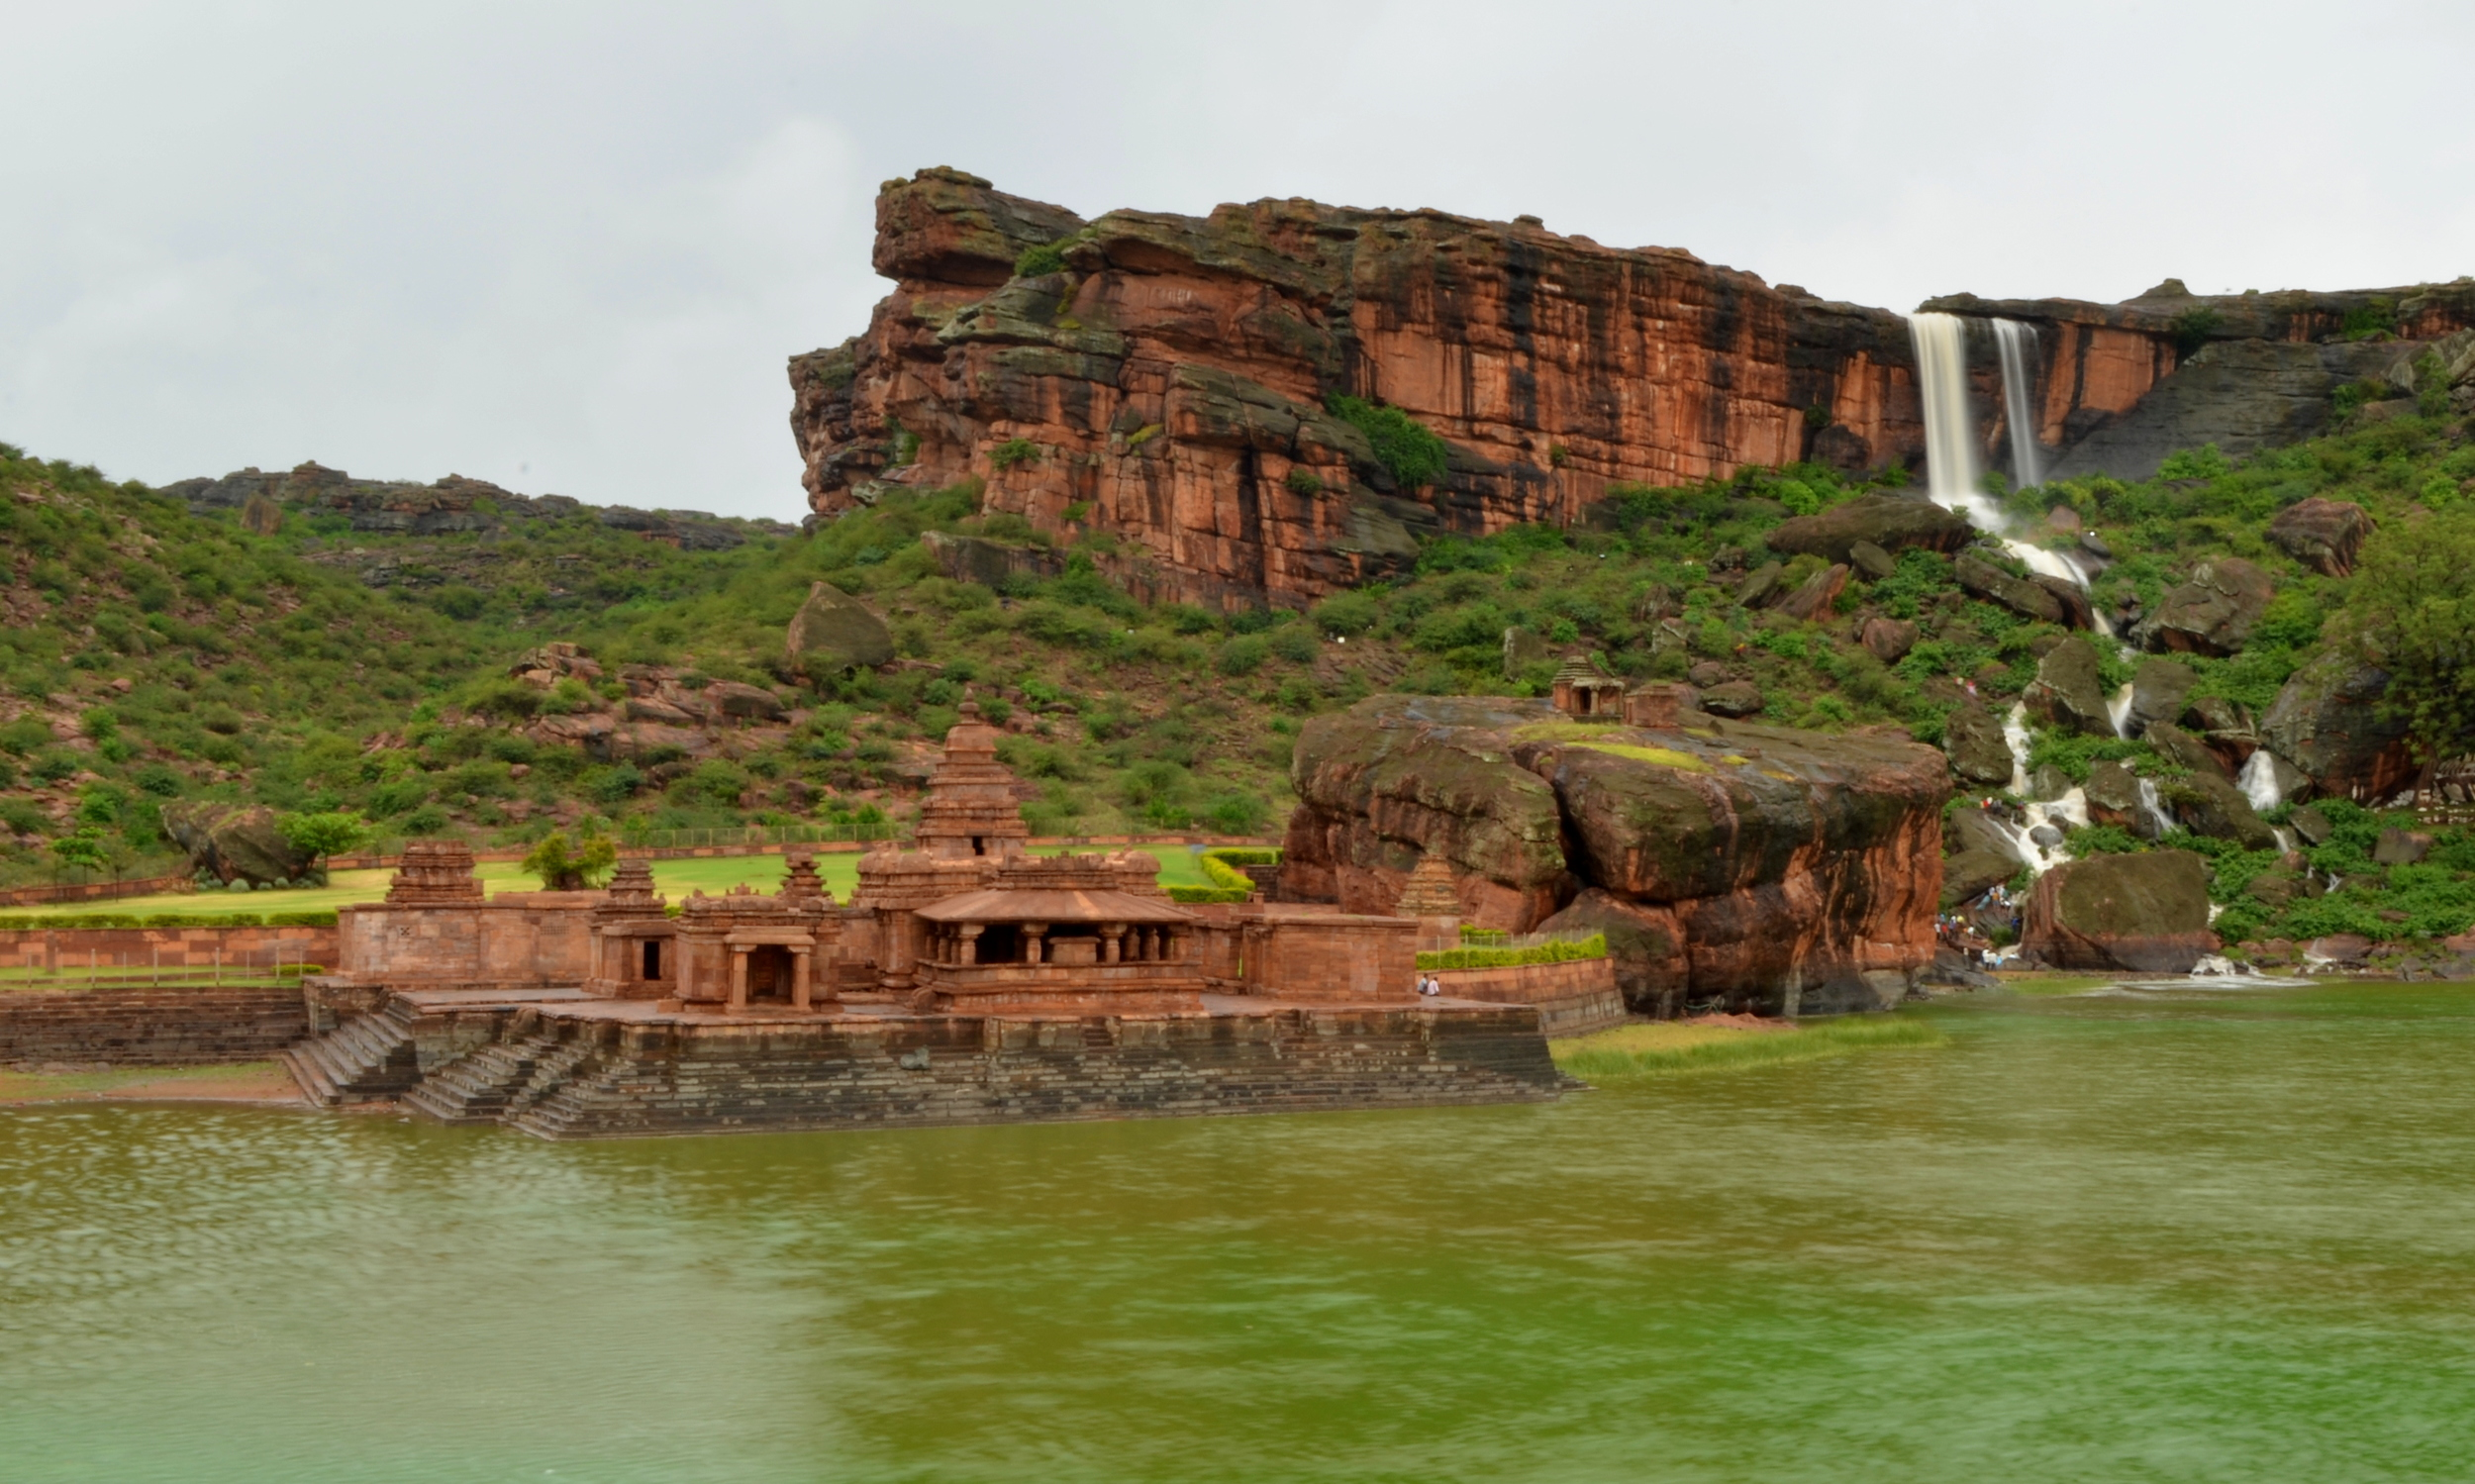 View_of_Bhutanatha_temple_in_Badami_during_monsoon.jpg